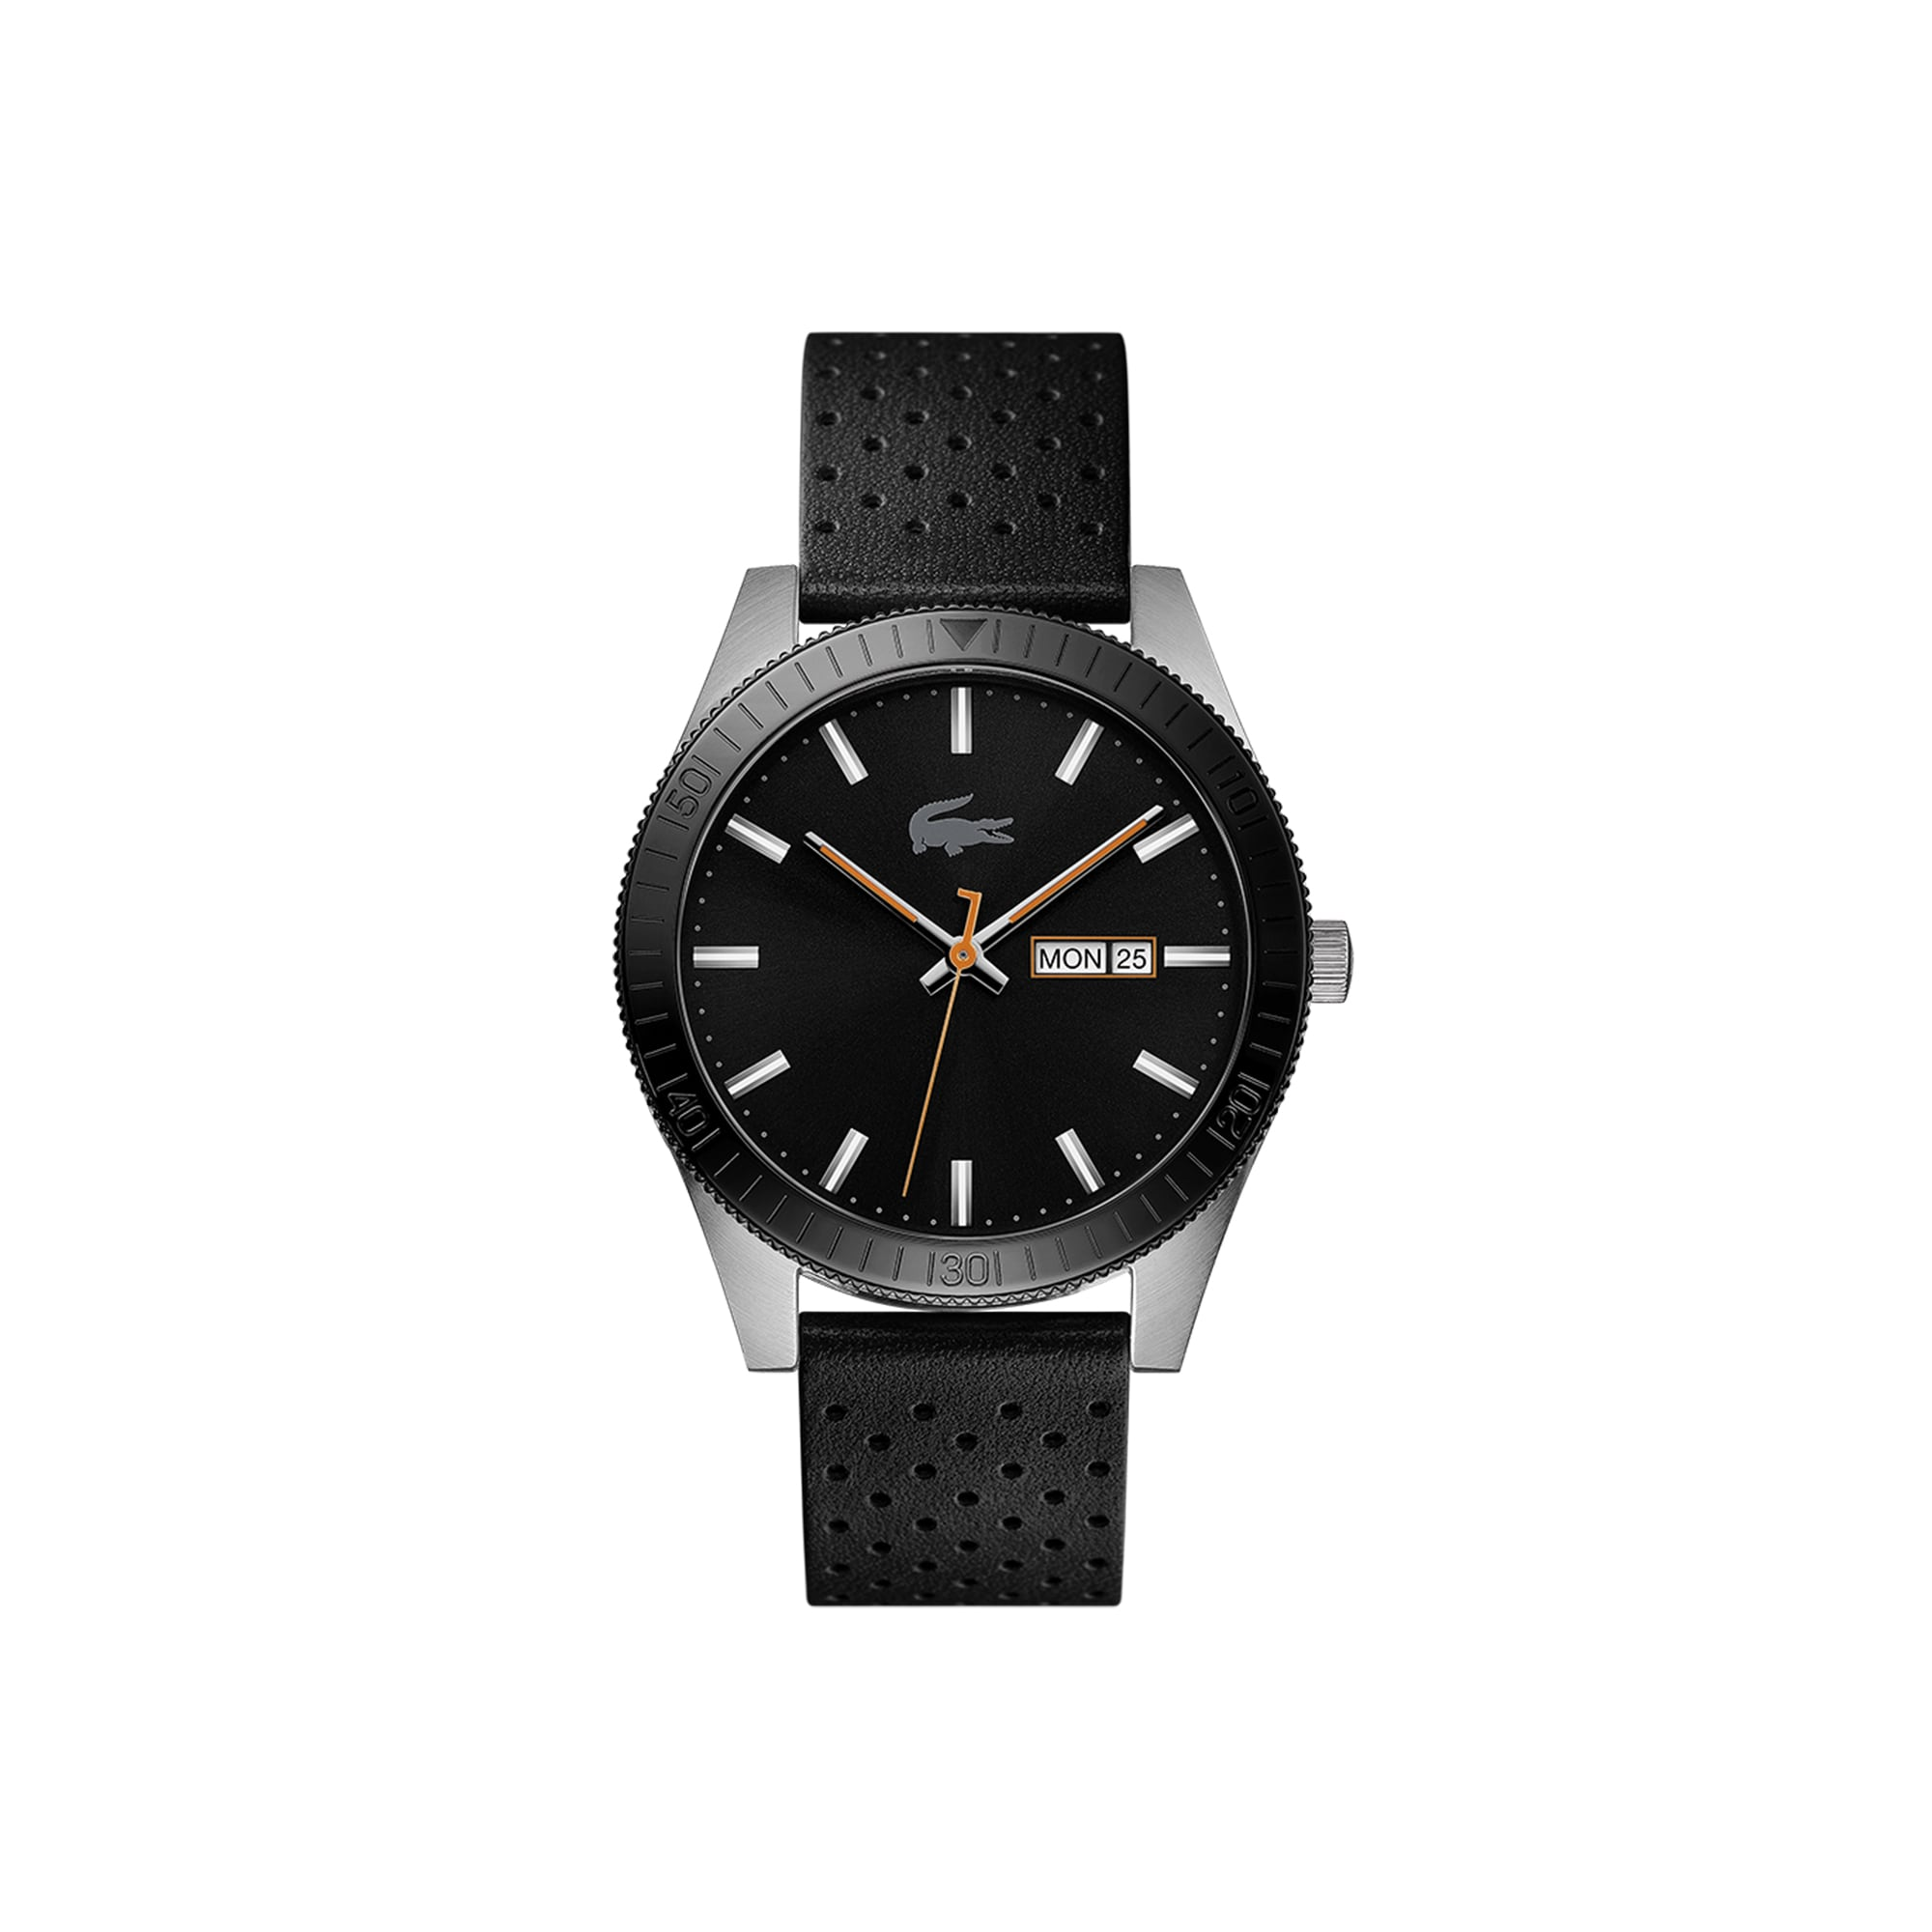 Men's Lacoste Legacy Watch with Black Punched Leather Strap